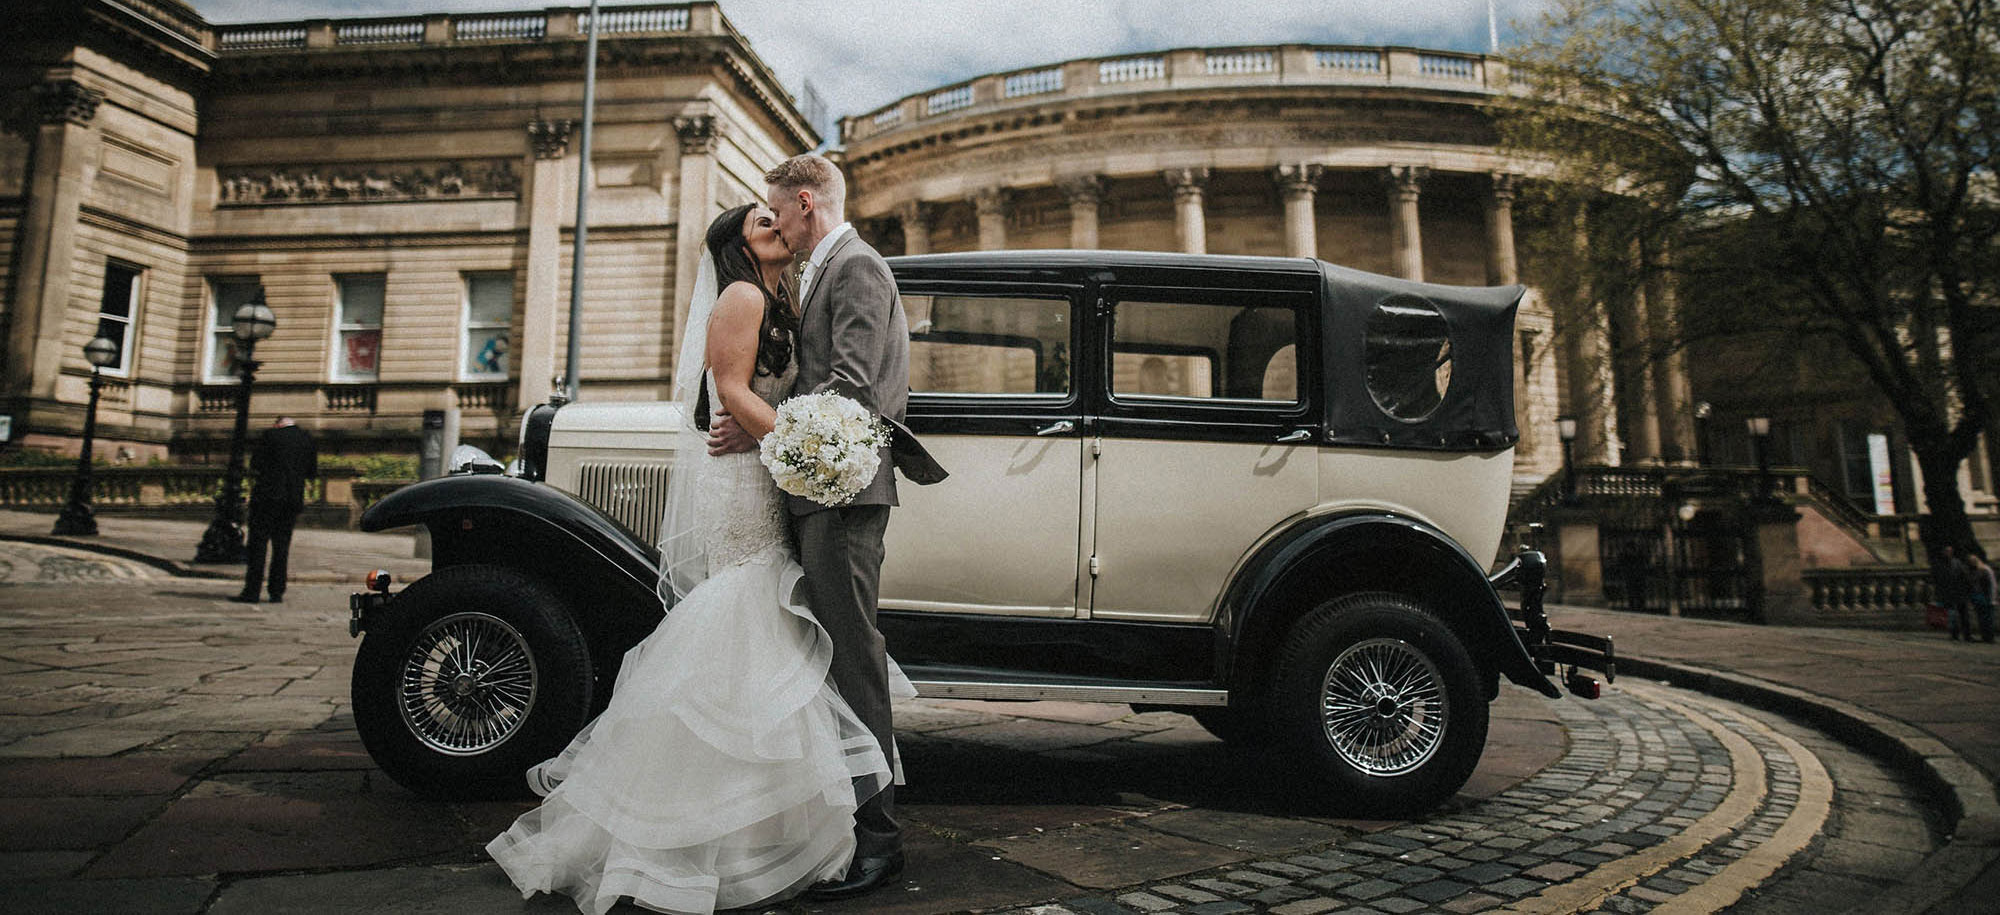 Wedded couple next to wedding car